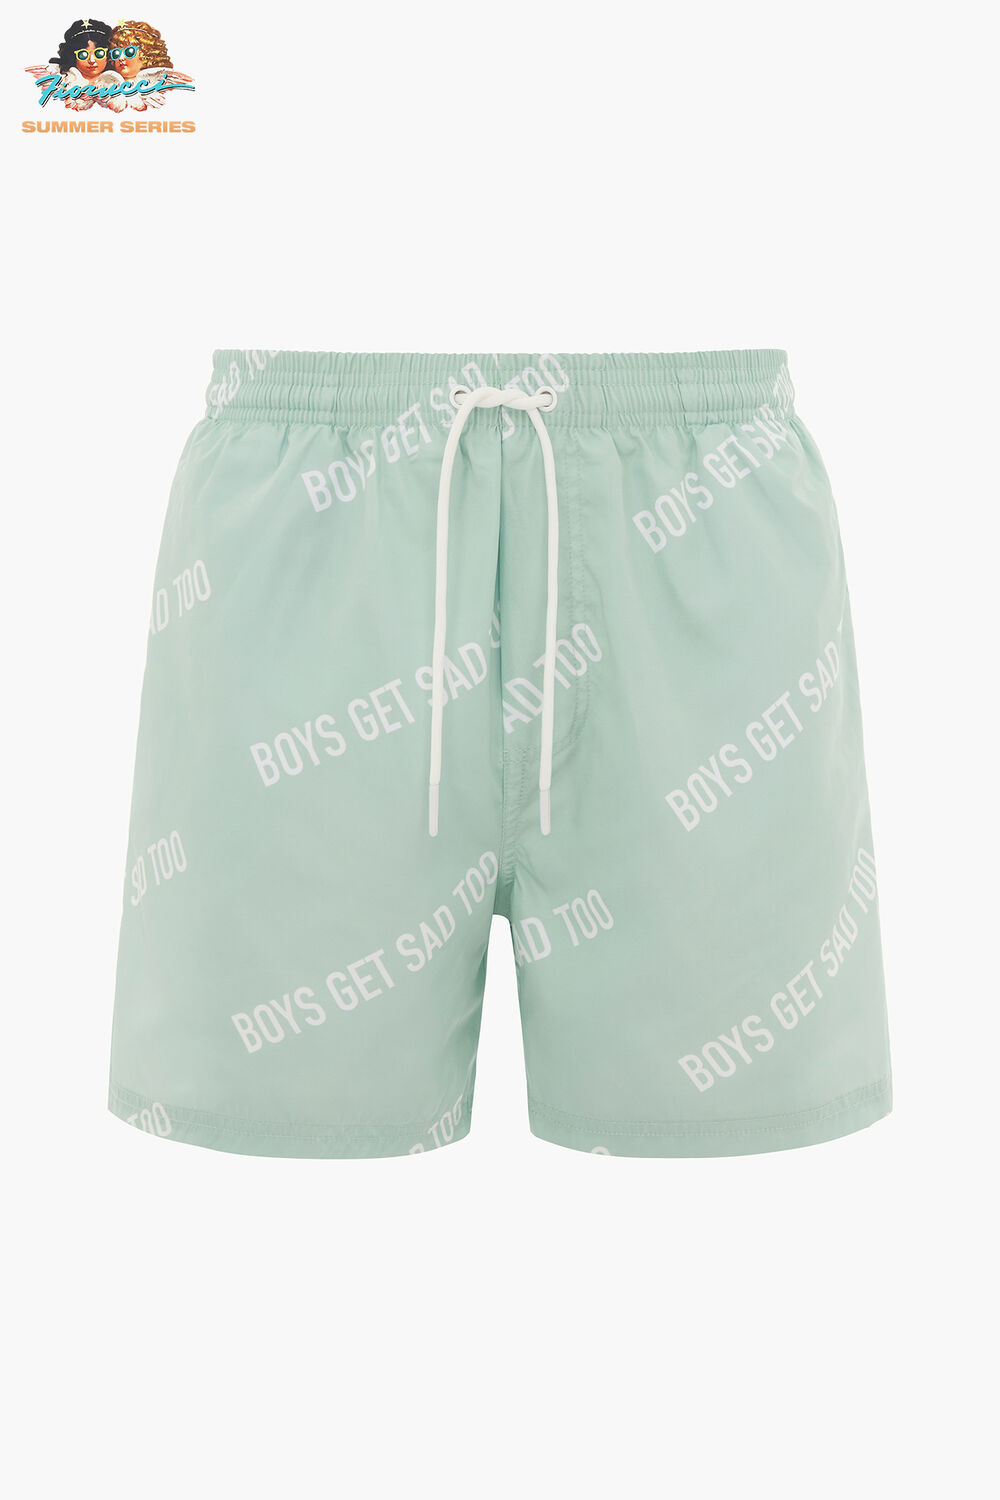 Boys Get Sad Too All Over Shorts Green